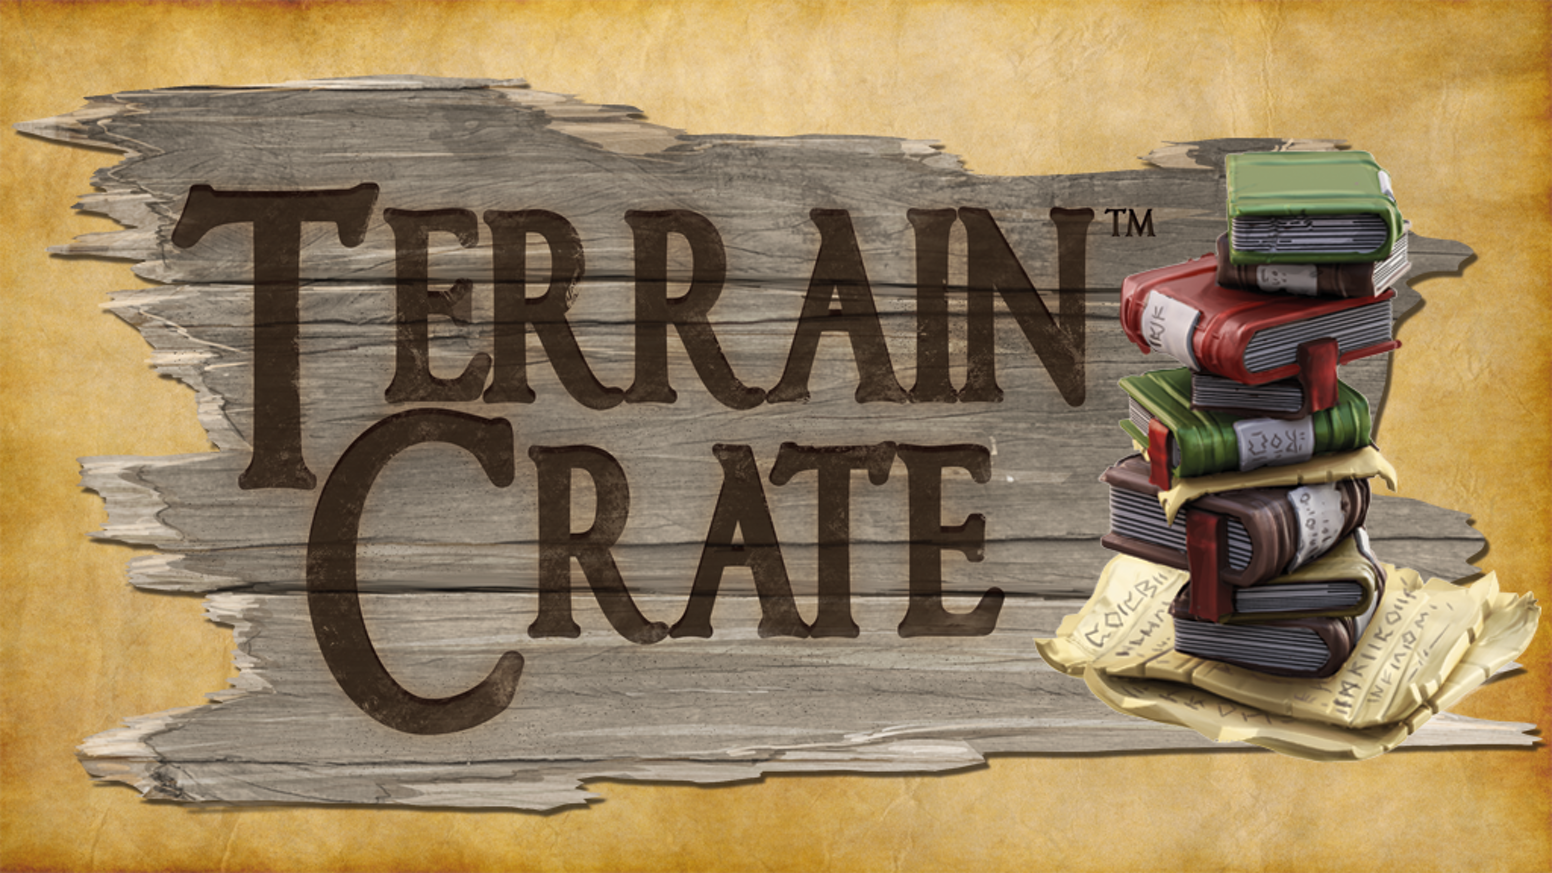 TerrainCrate - Plastic, affordable, fantasy terrain! by Mantic Games